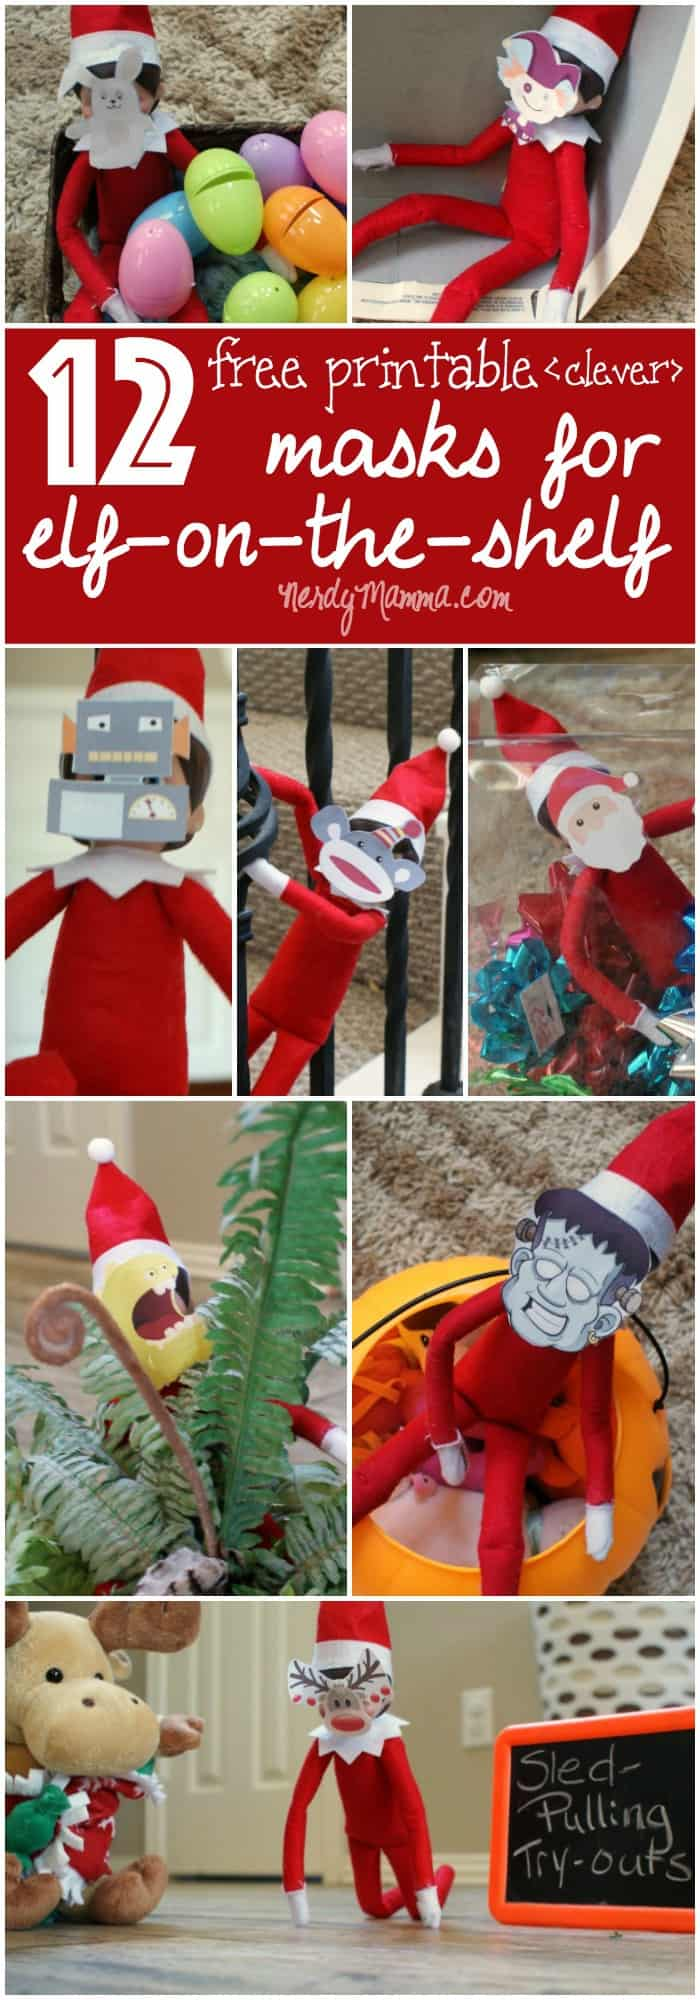 These 12 free printable masks for the elf on the shelf are so cute! This will make doing the elf on the shelf so much easier this year!